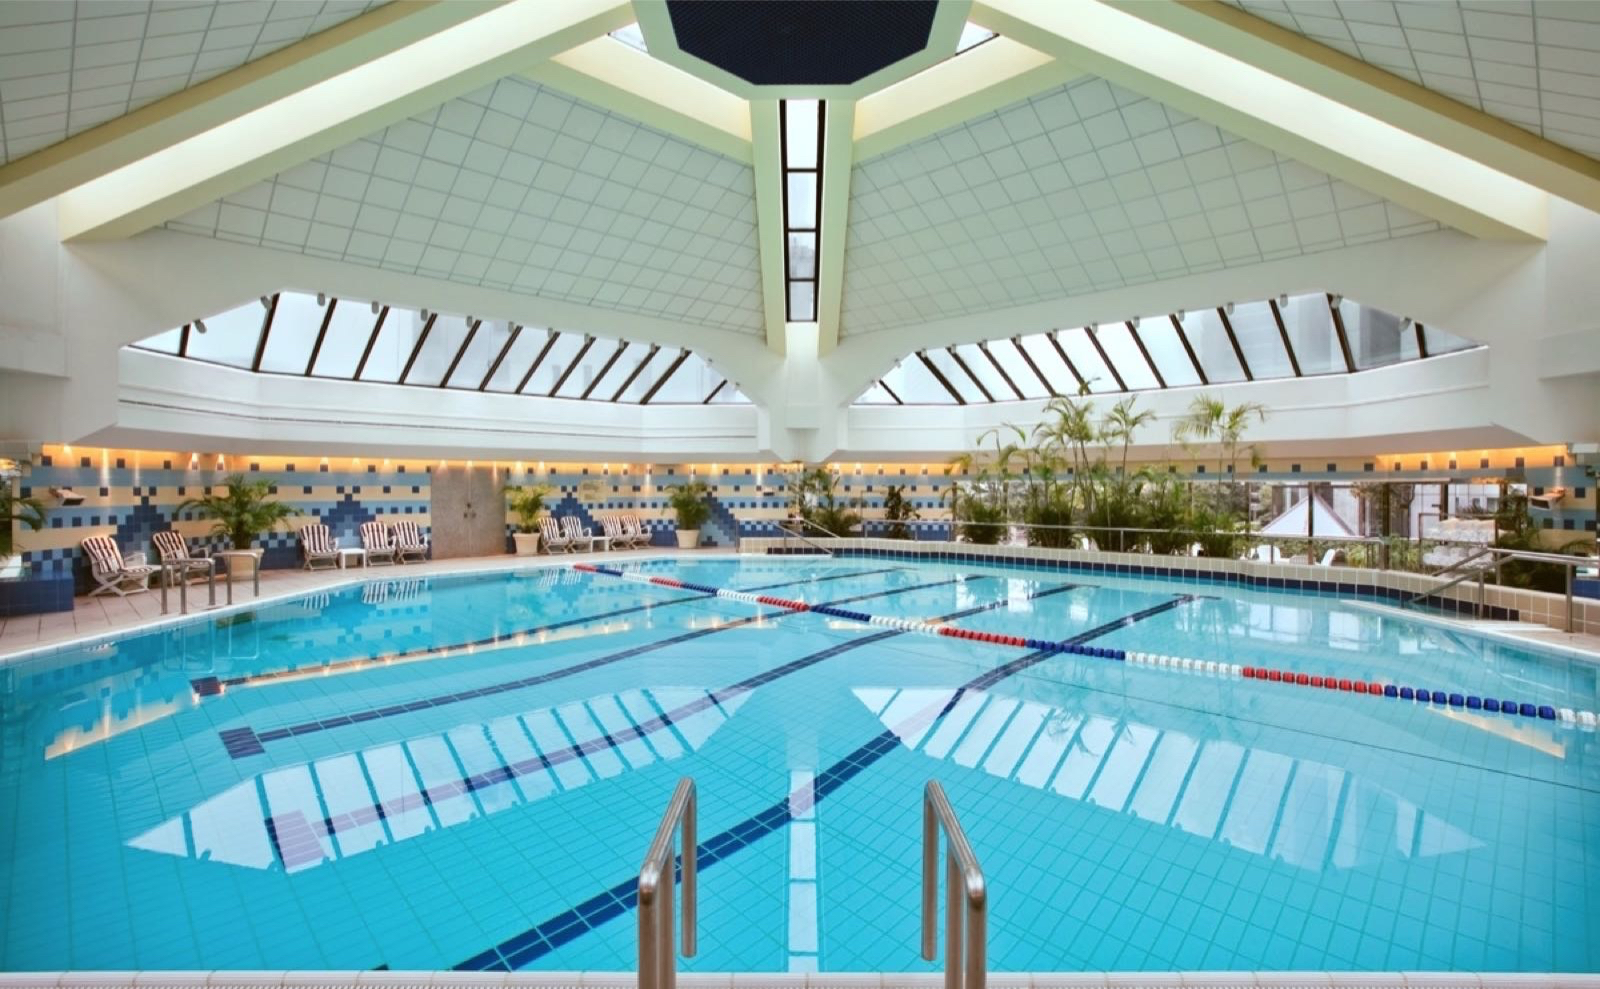 Win a gym and swim package worth 9,999RMB from Move Shanghai